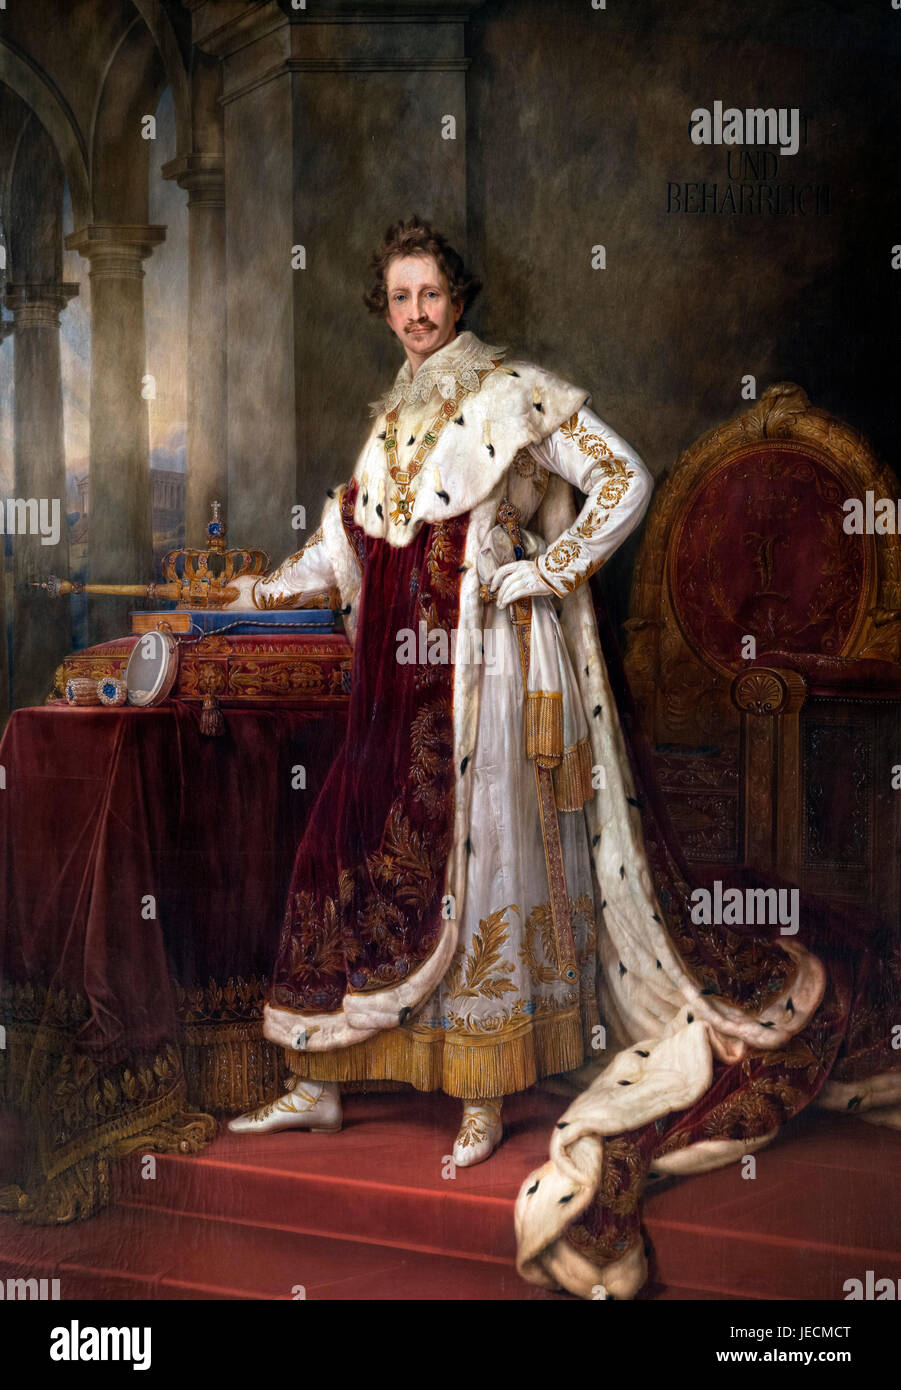 King Ludwig I (1786-1868), King of Bavaria from 1825 to 1848. Coronation portrait by Joseph Stieler, 1825 - Stock Image